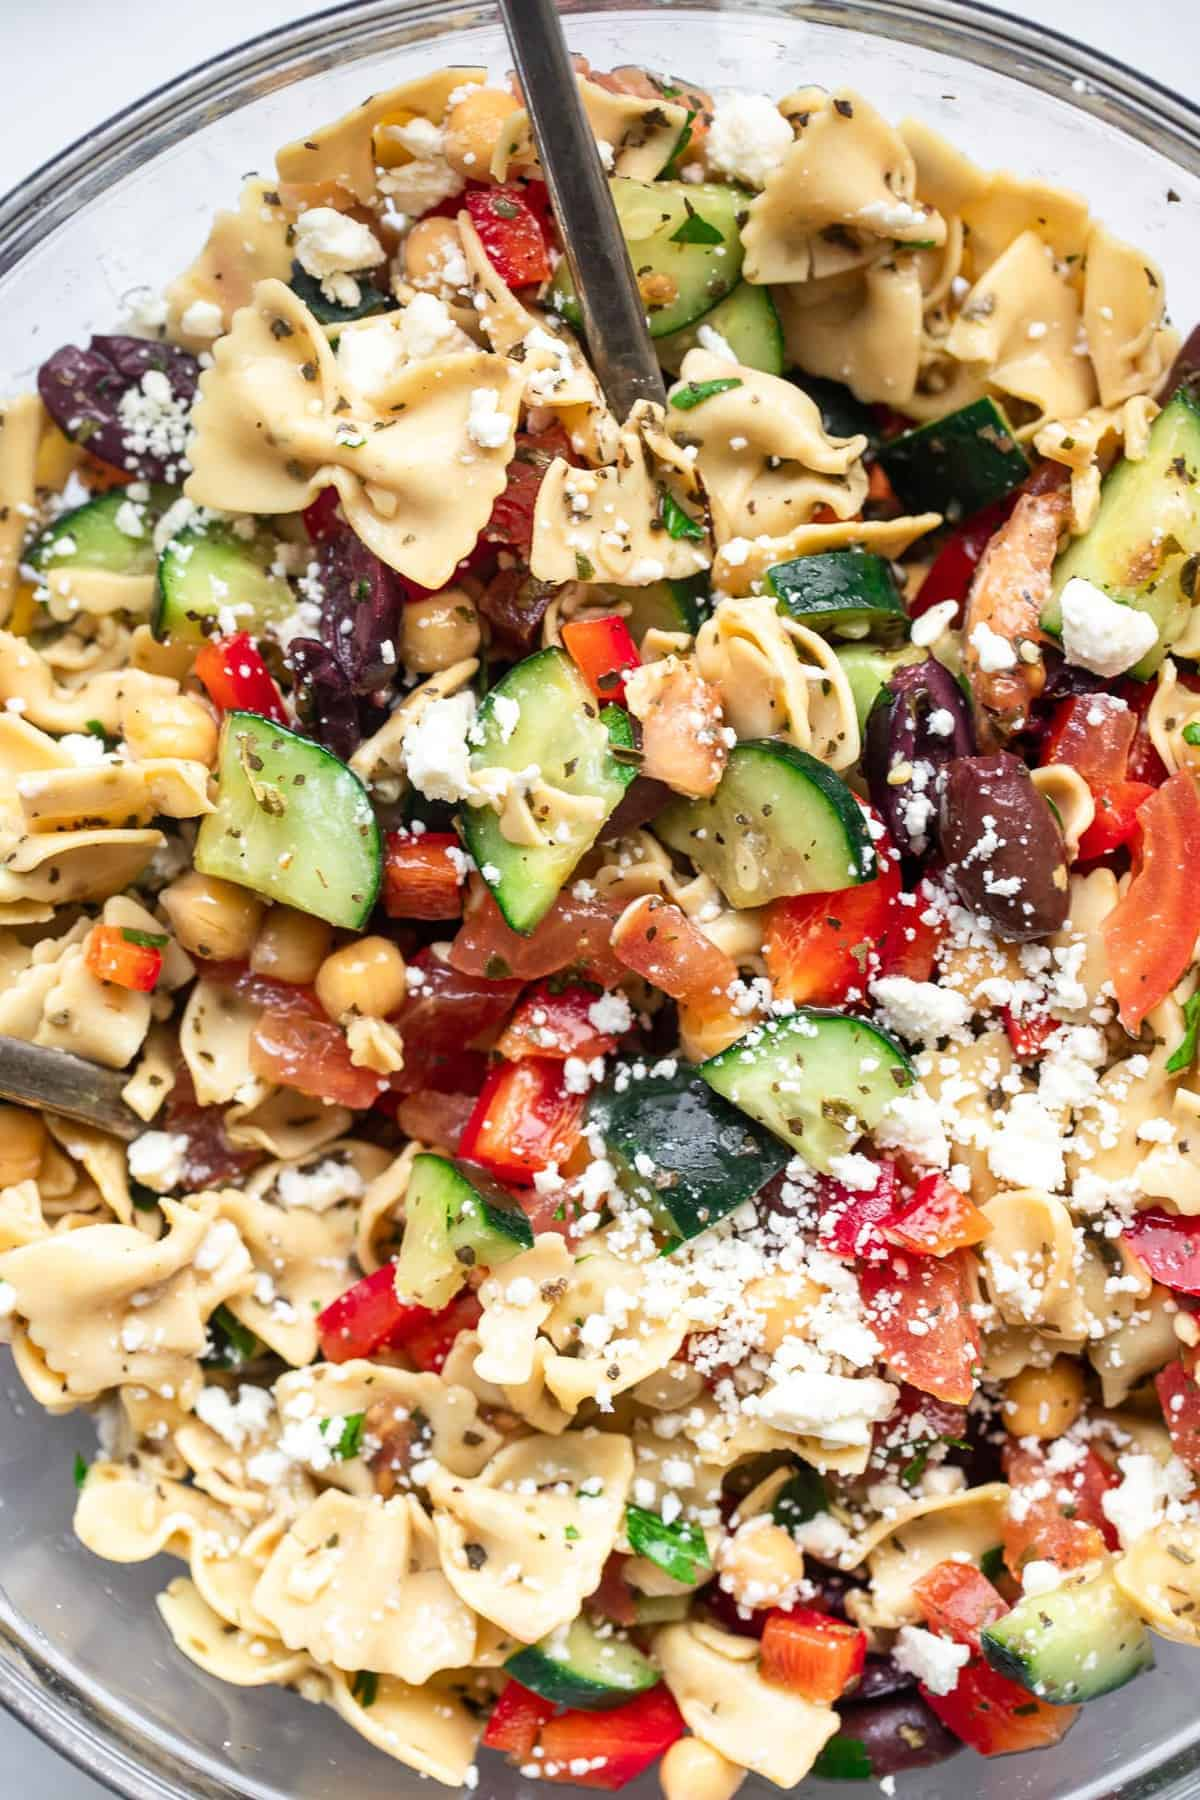 Mediterranean Chickpea Pasta Salad in a large glass bowl